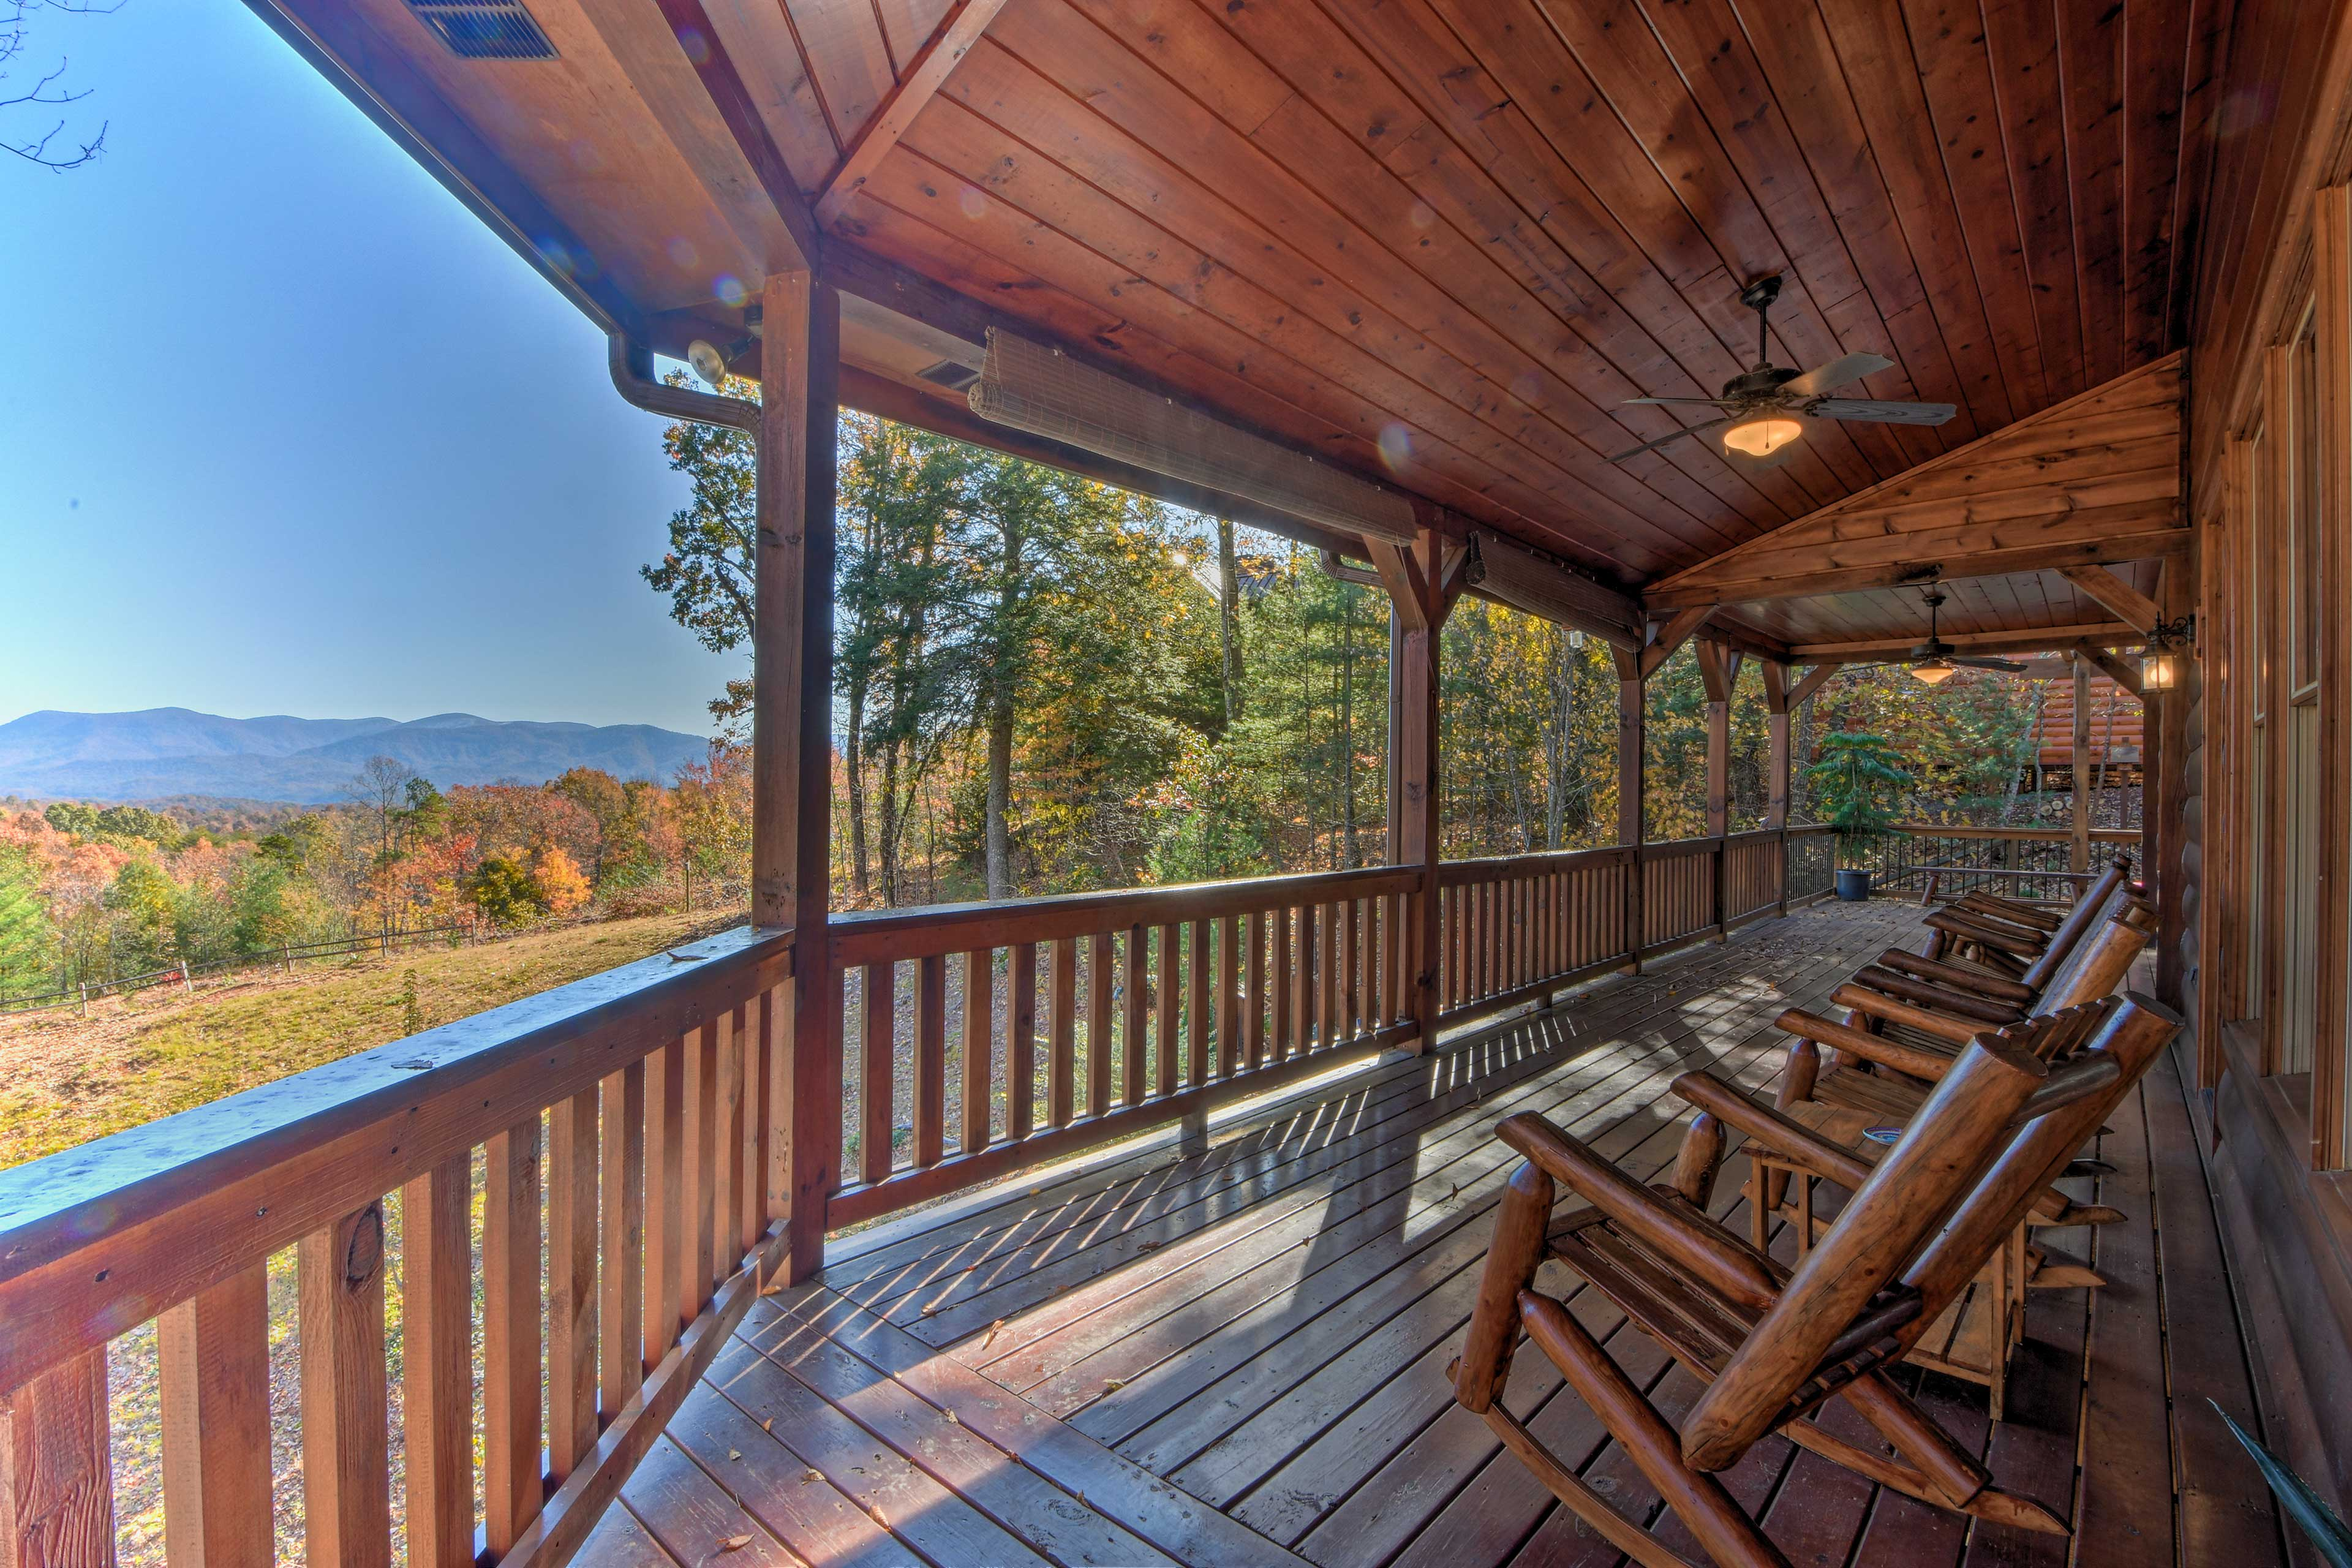 Fall in love with this mountain escape cabin in Ellijay, Georgia.